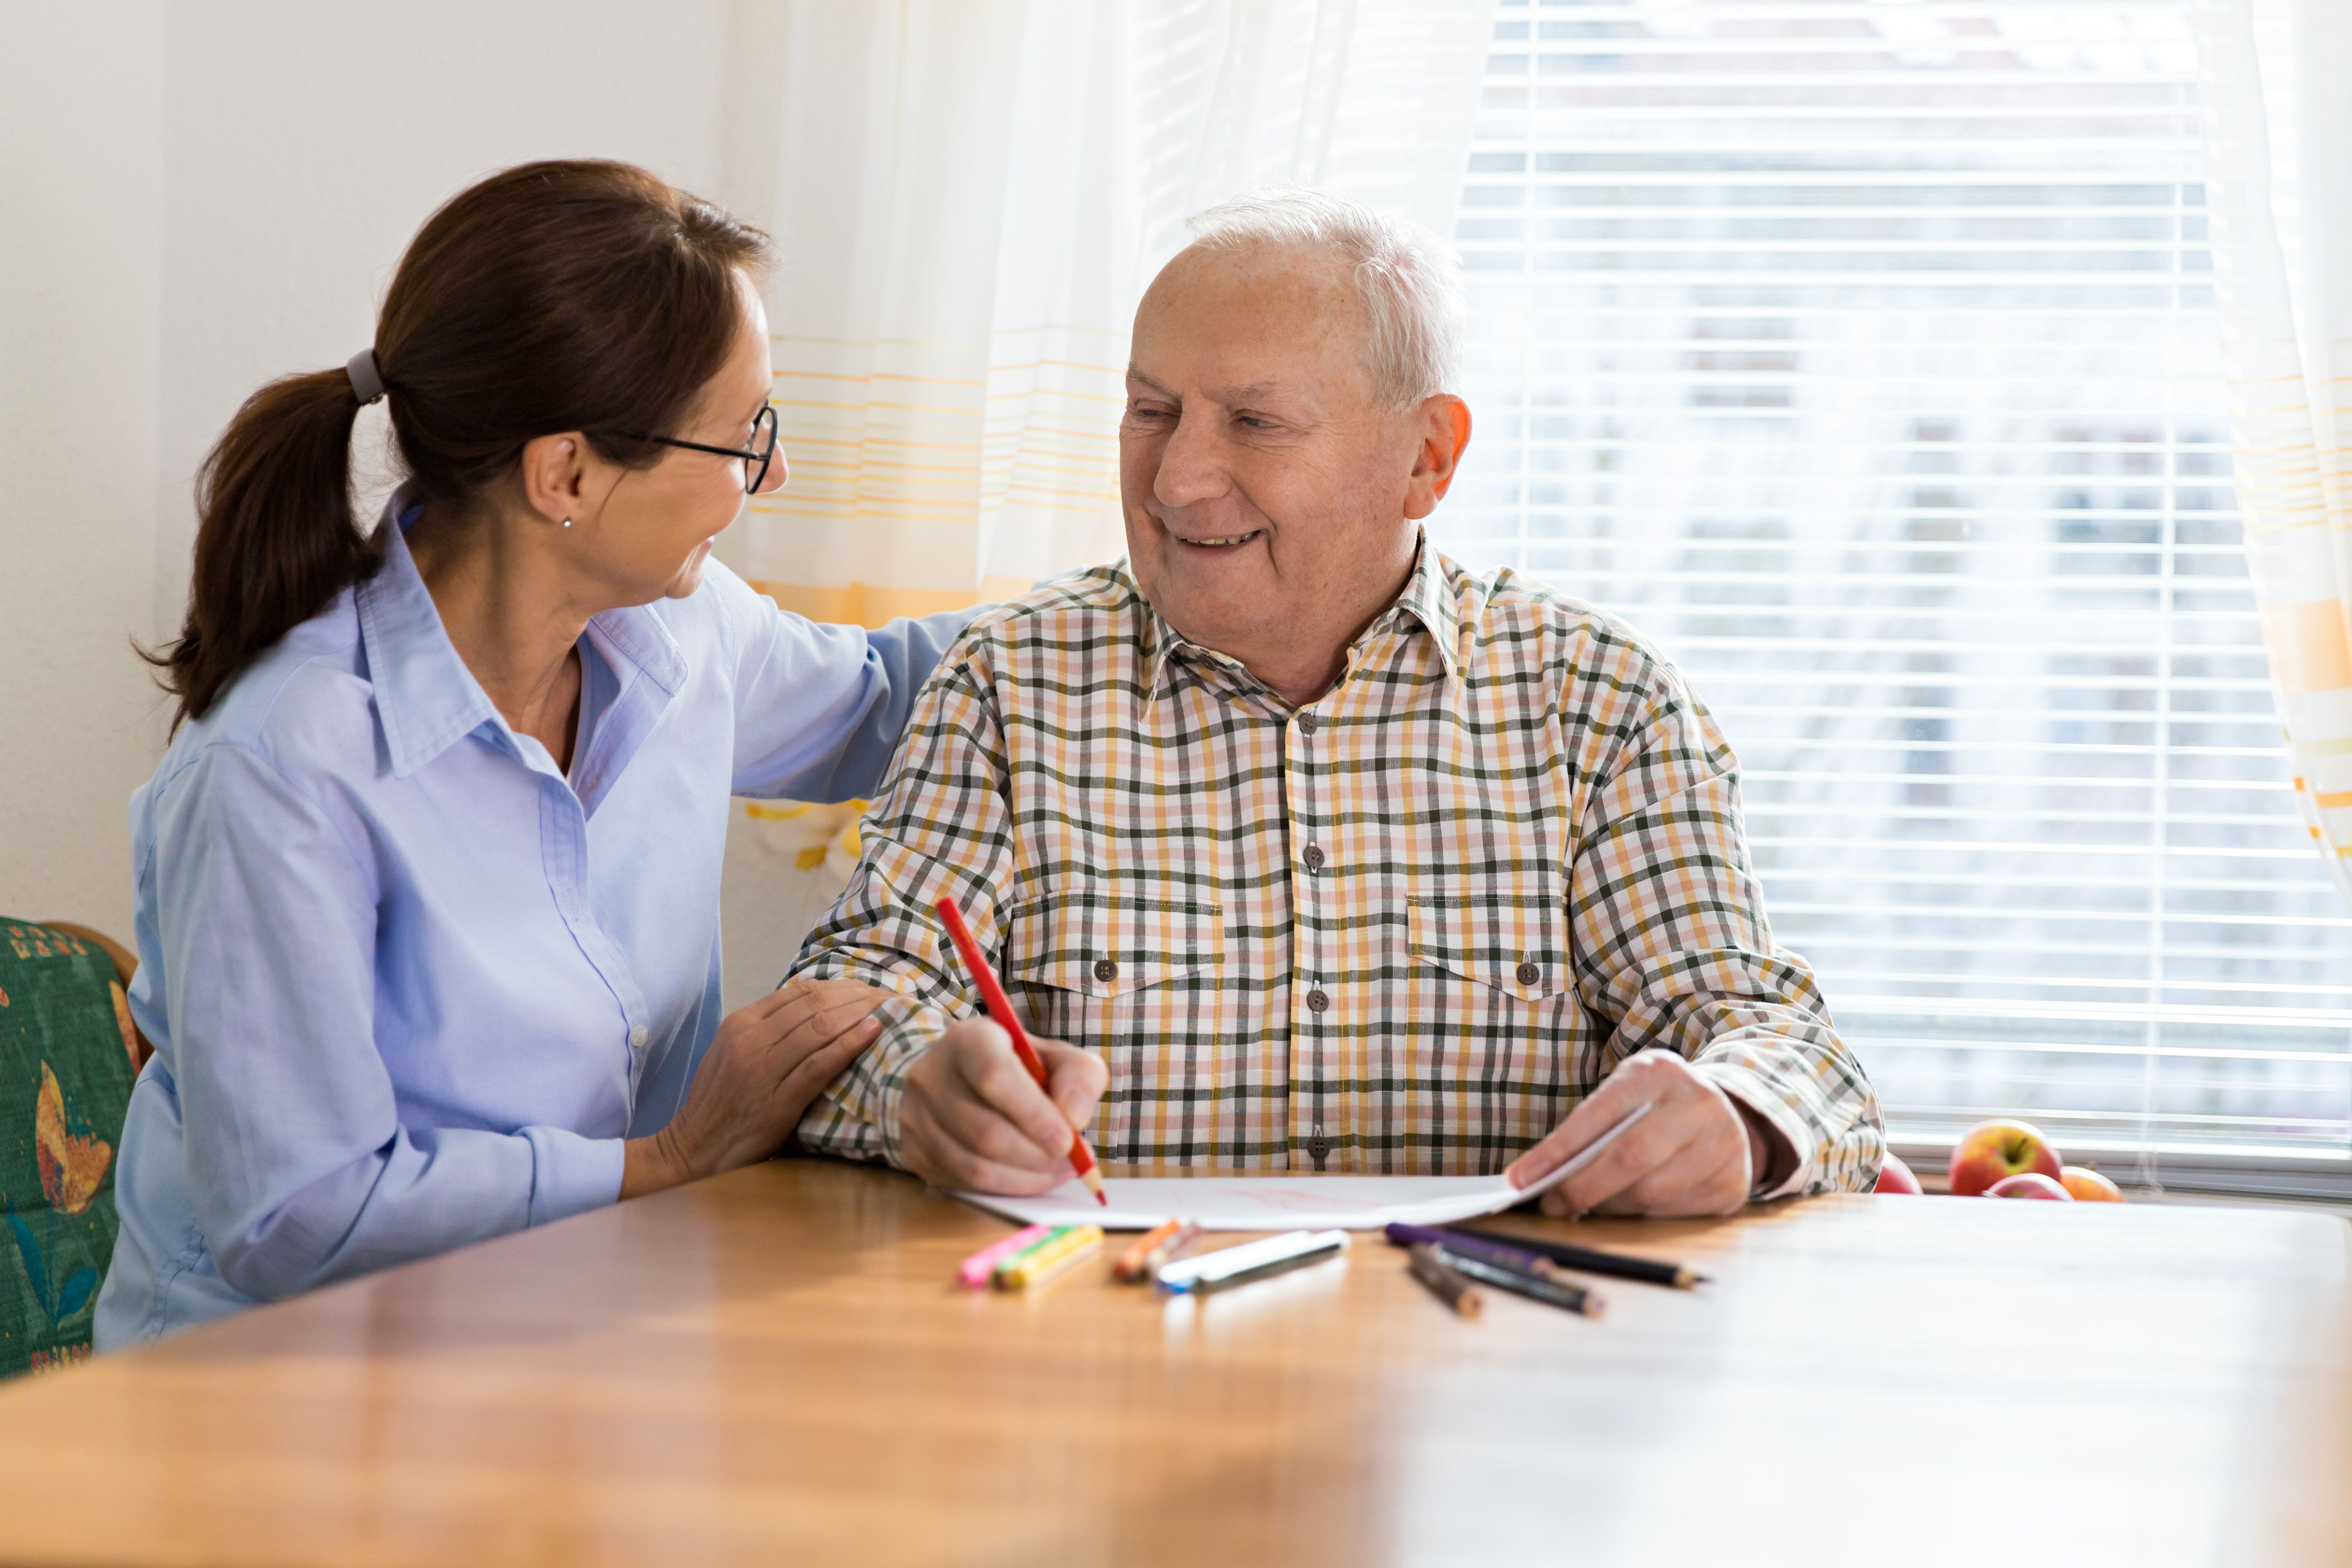 Occupational therapy assistant and patient